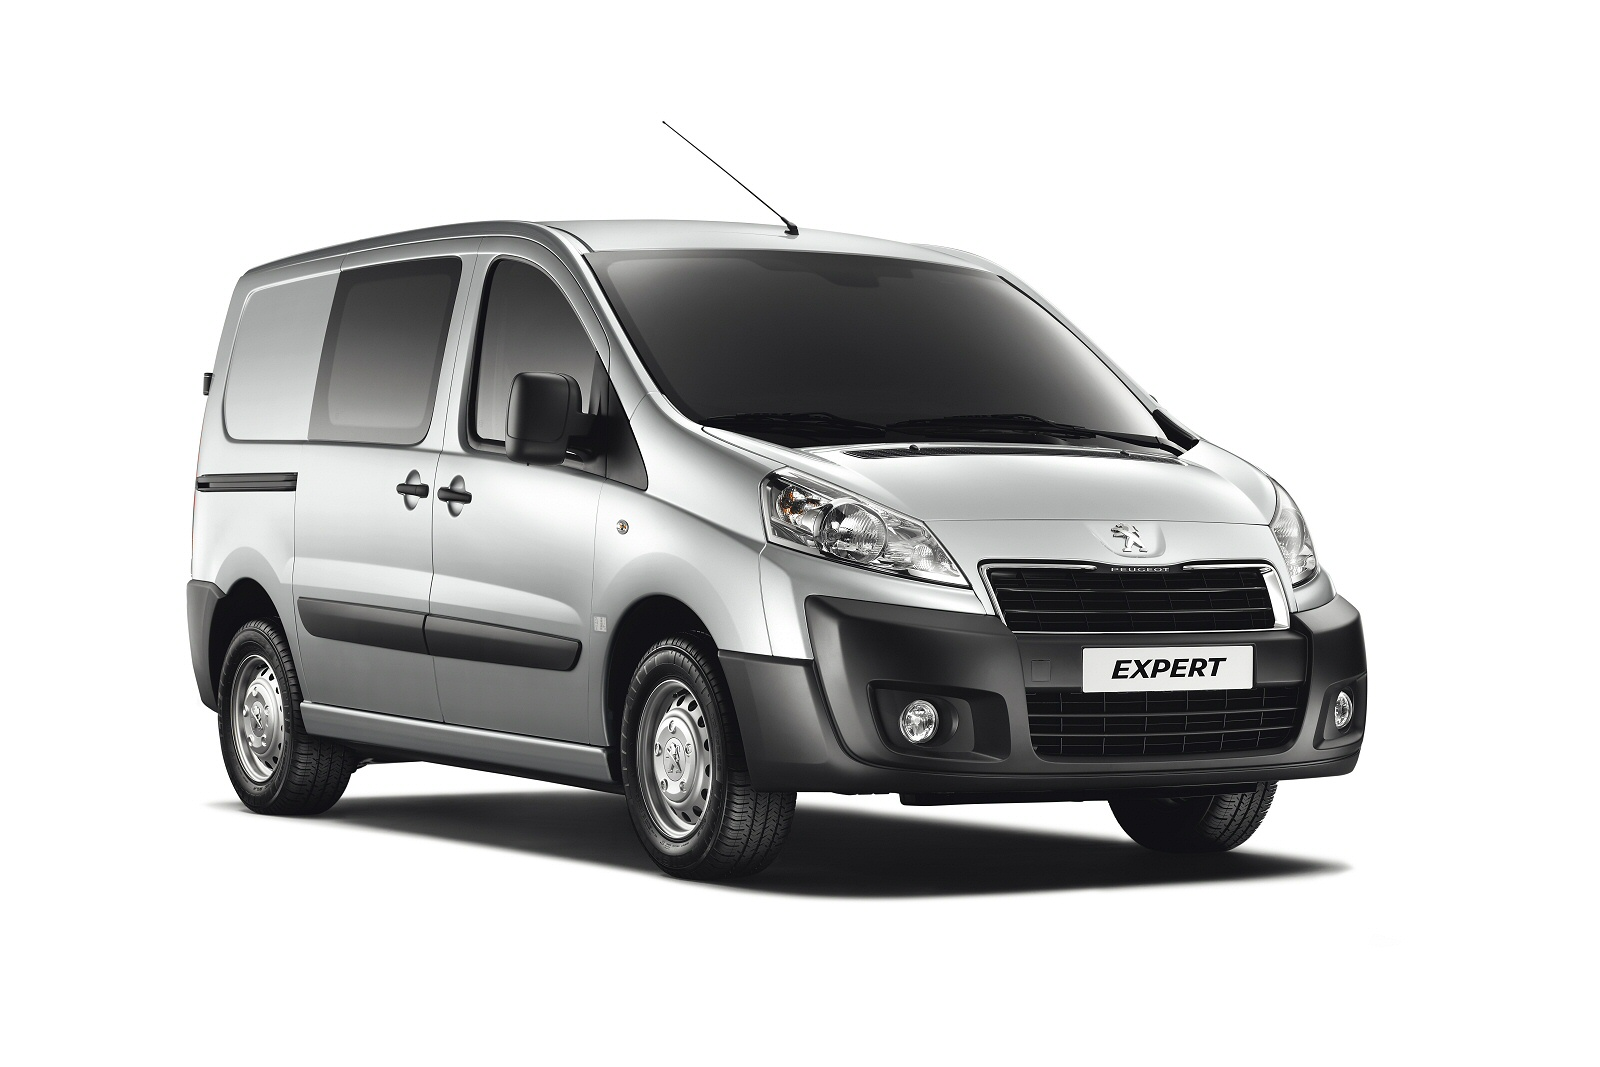 peugeot expert van video review vansdirect. Black Bedroom Furniture Sets. Home Design Ideas